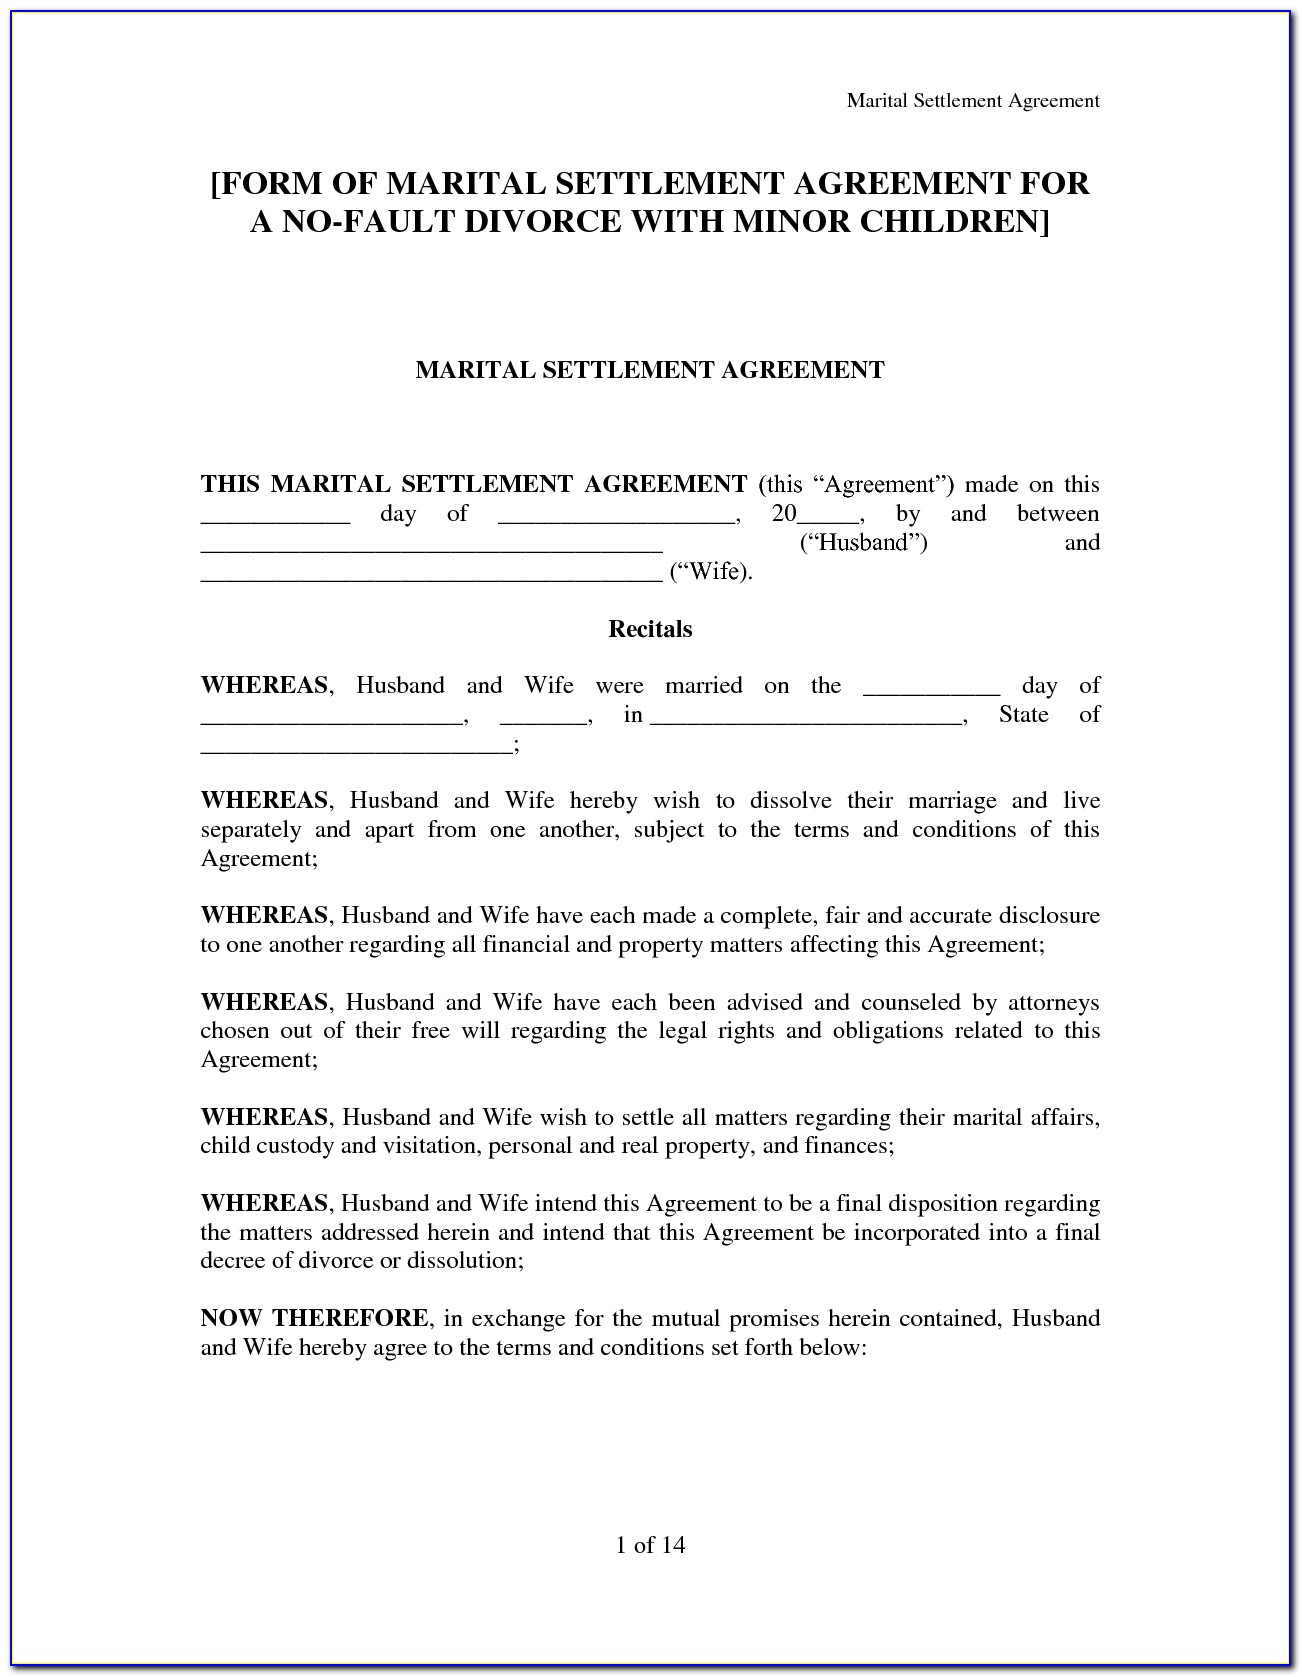 Maryland Marriage Separation Agreement Form